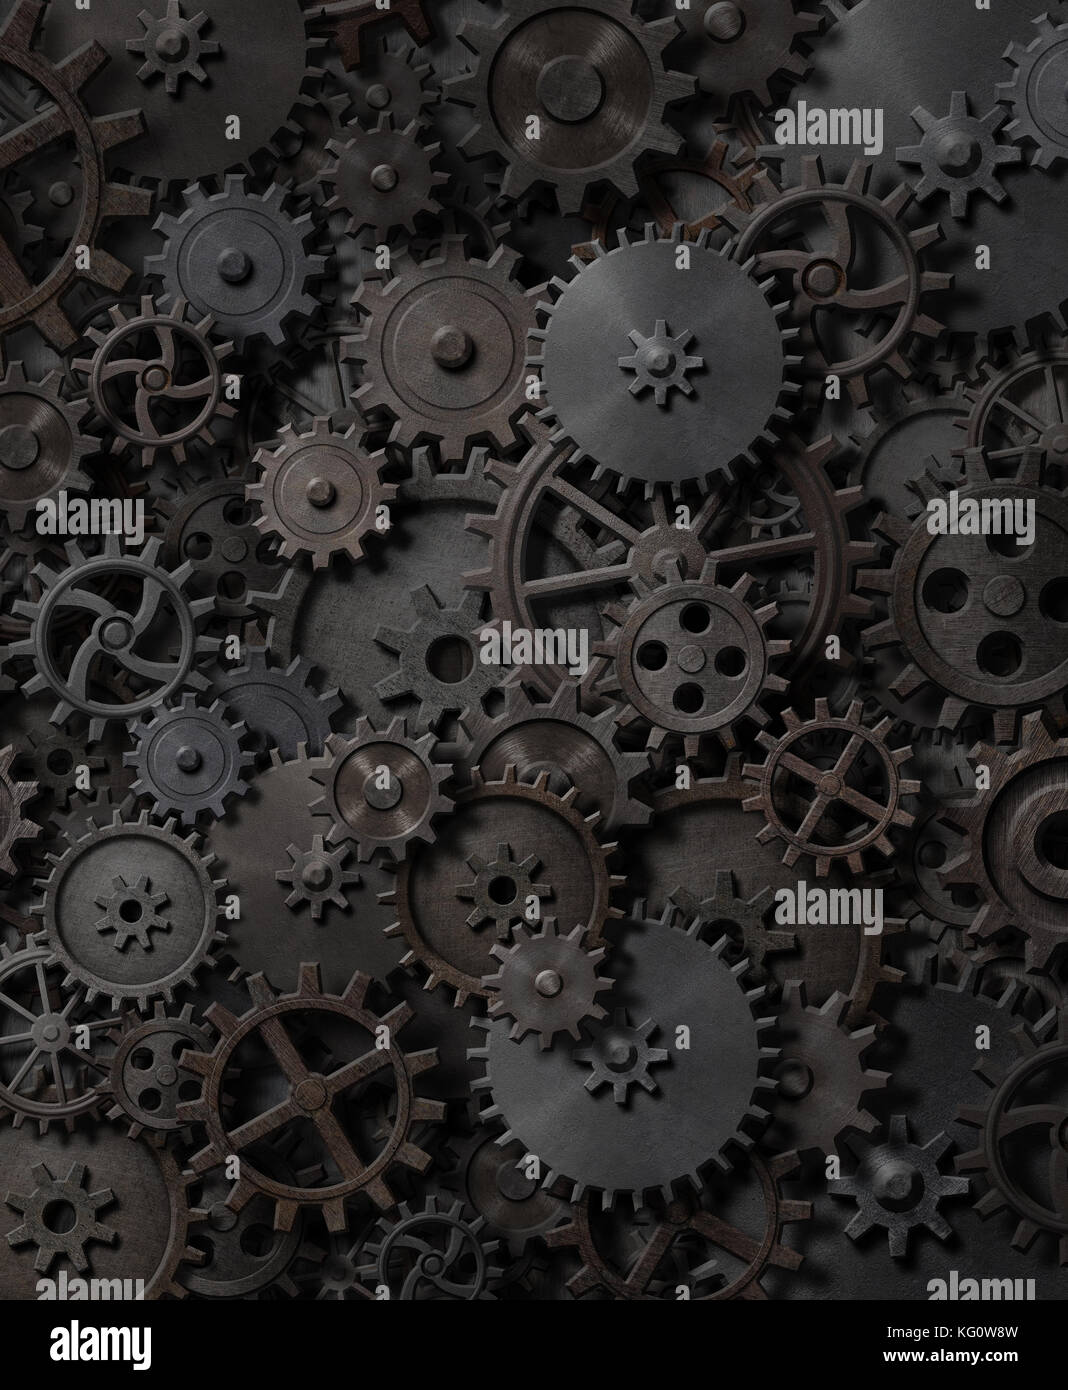 Gears and cogs steam punk background 3d illustration stock photo gears and cogs steam punk background 3d illustration malvernweather Images